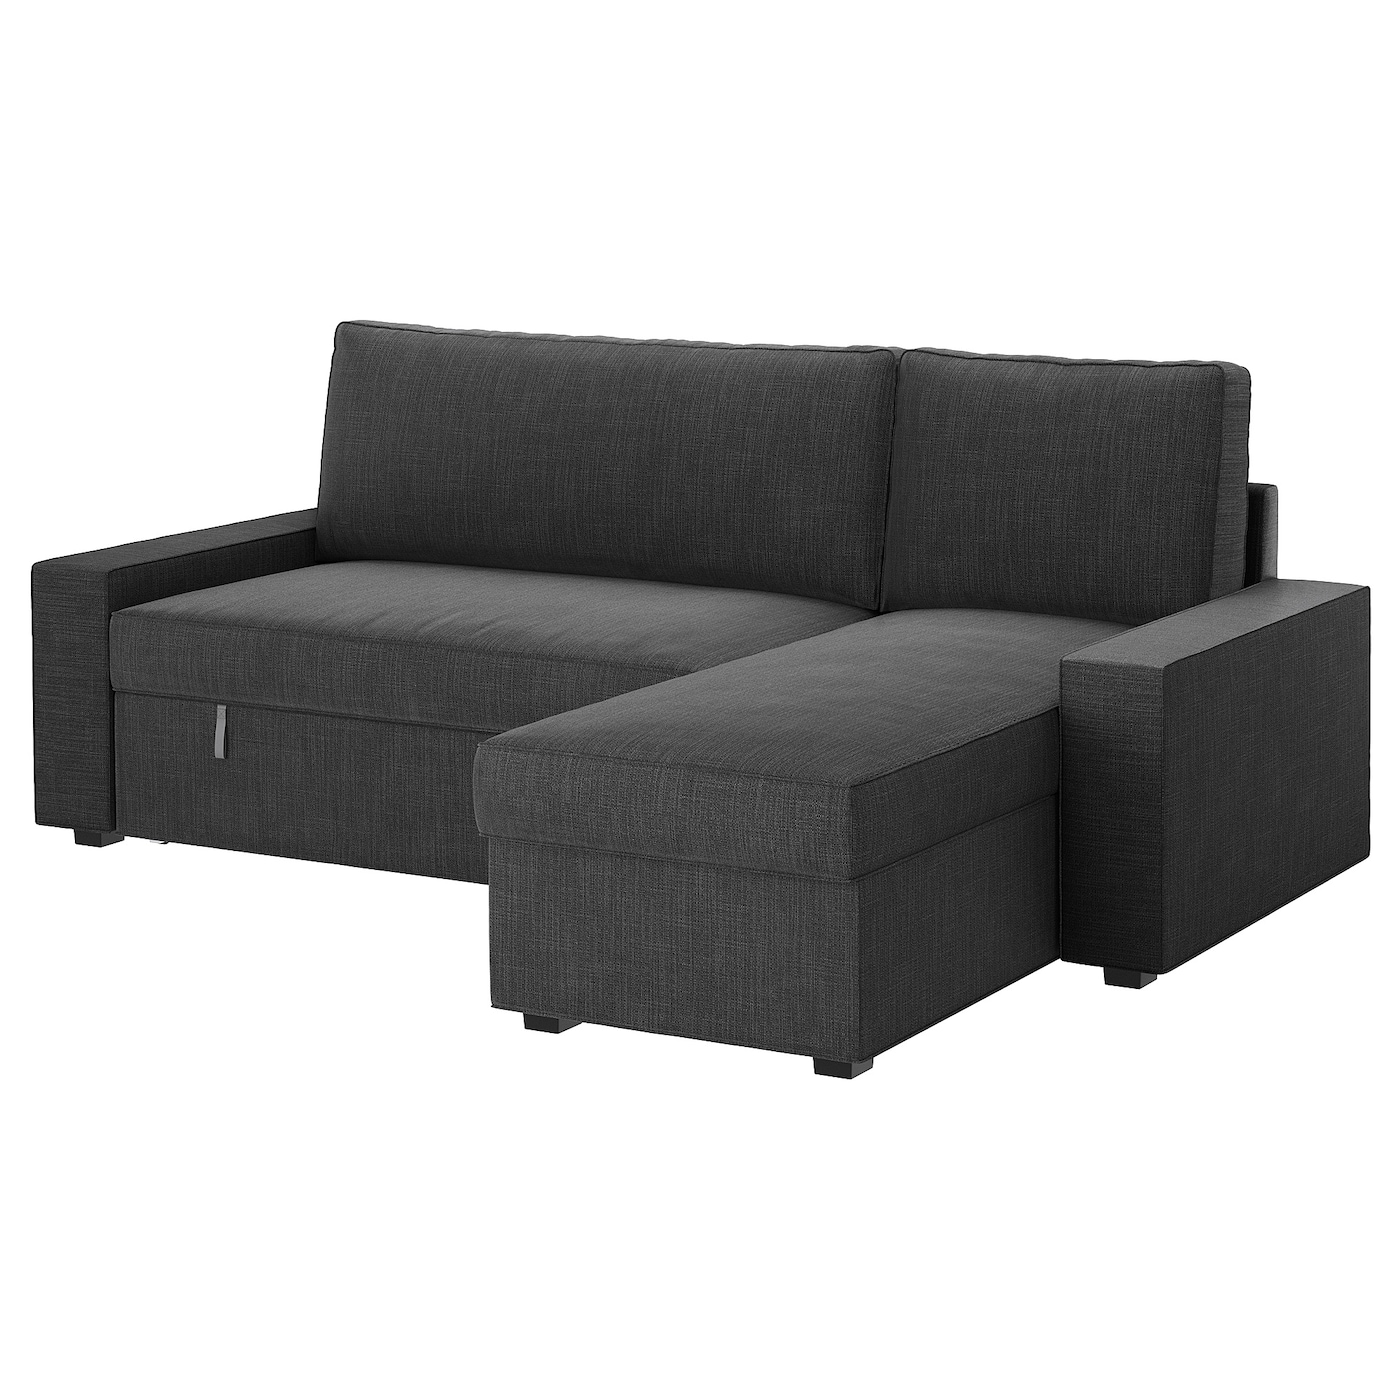 Vilasund sofa bed with chaise longue hillared anthracite - Sofa cama chaise longue ...